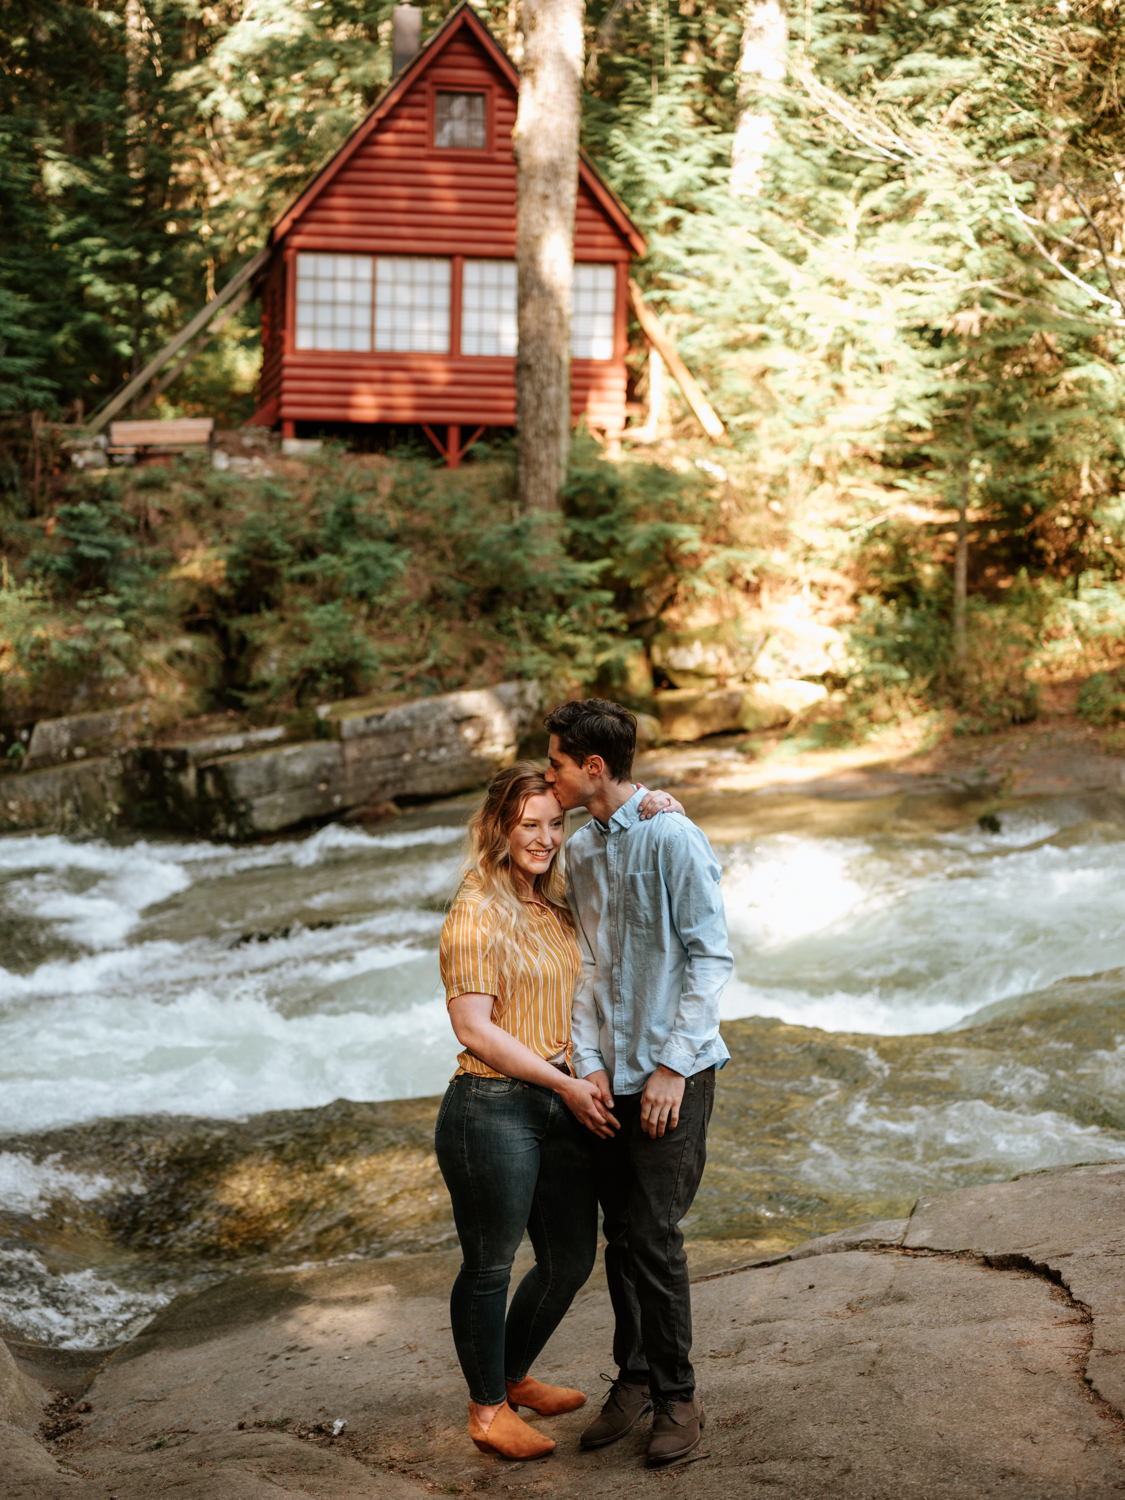 Franklin Falls Washington Engagement Session Stolen Glimpses Seattle Wedding Photographer 03.jpg